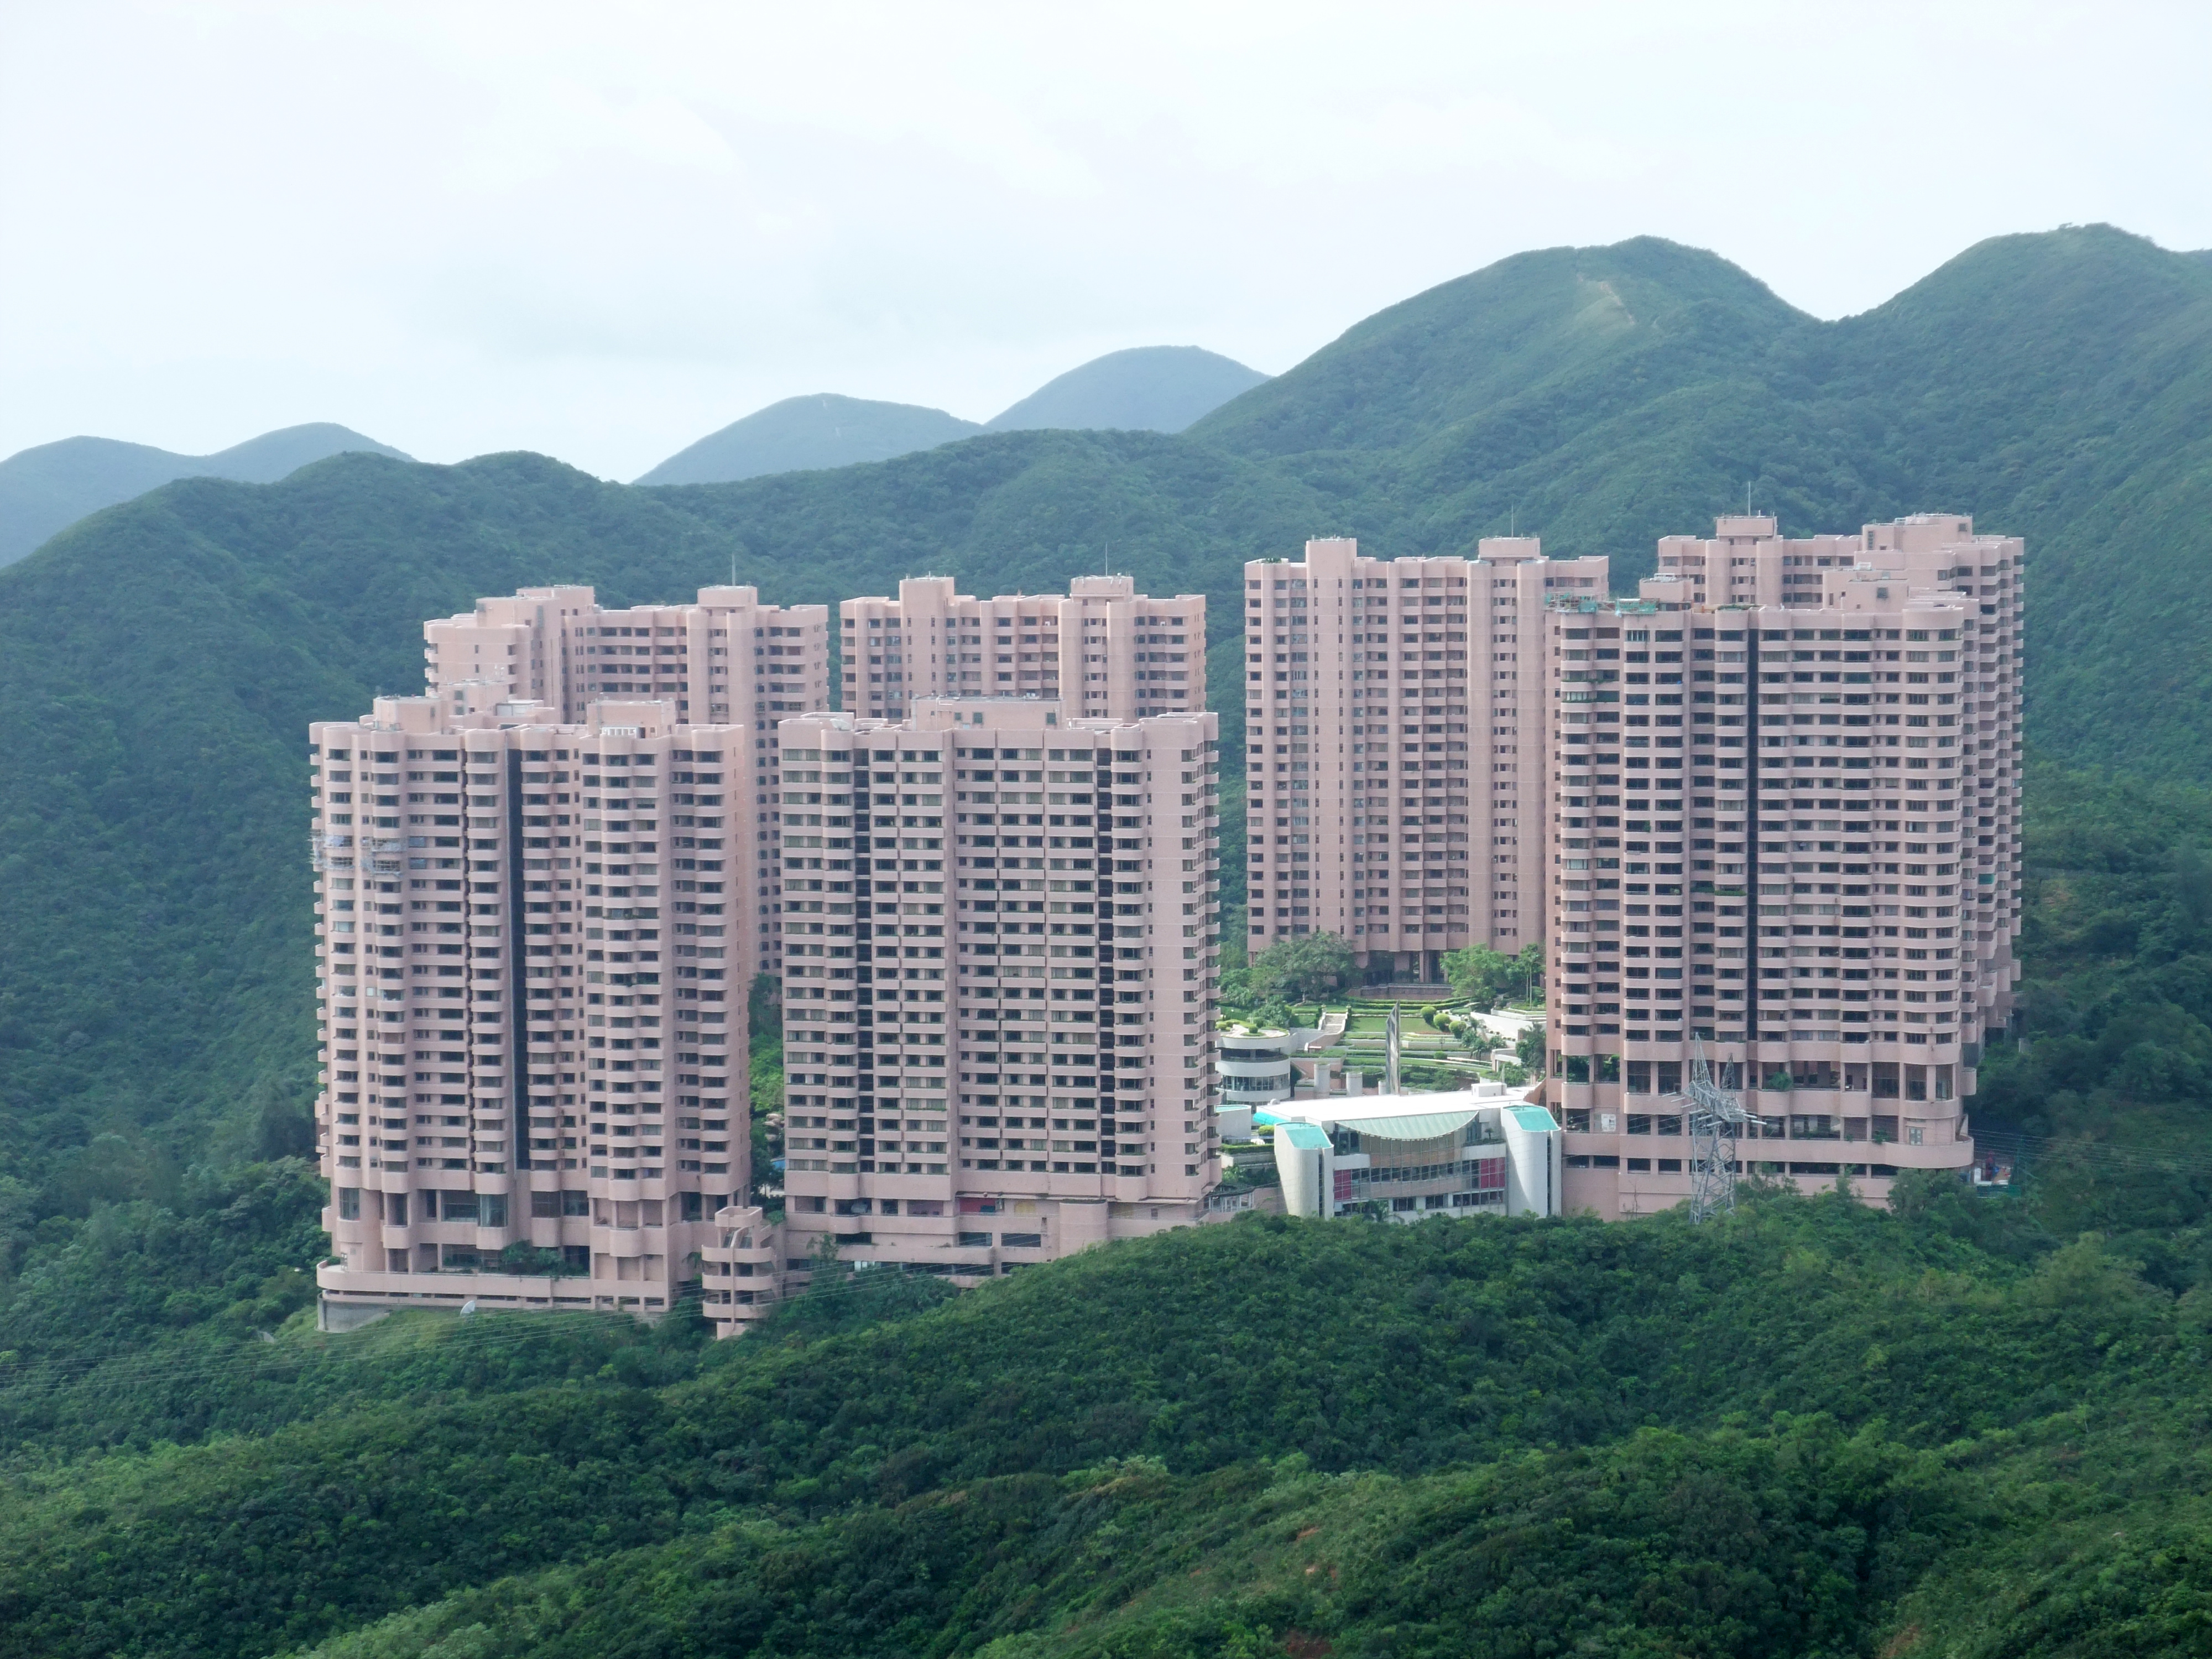 Land developers of hong kong for The parkview